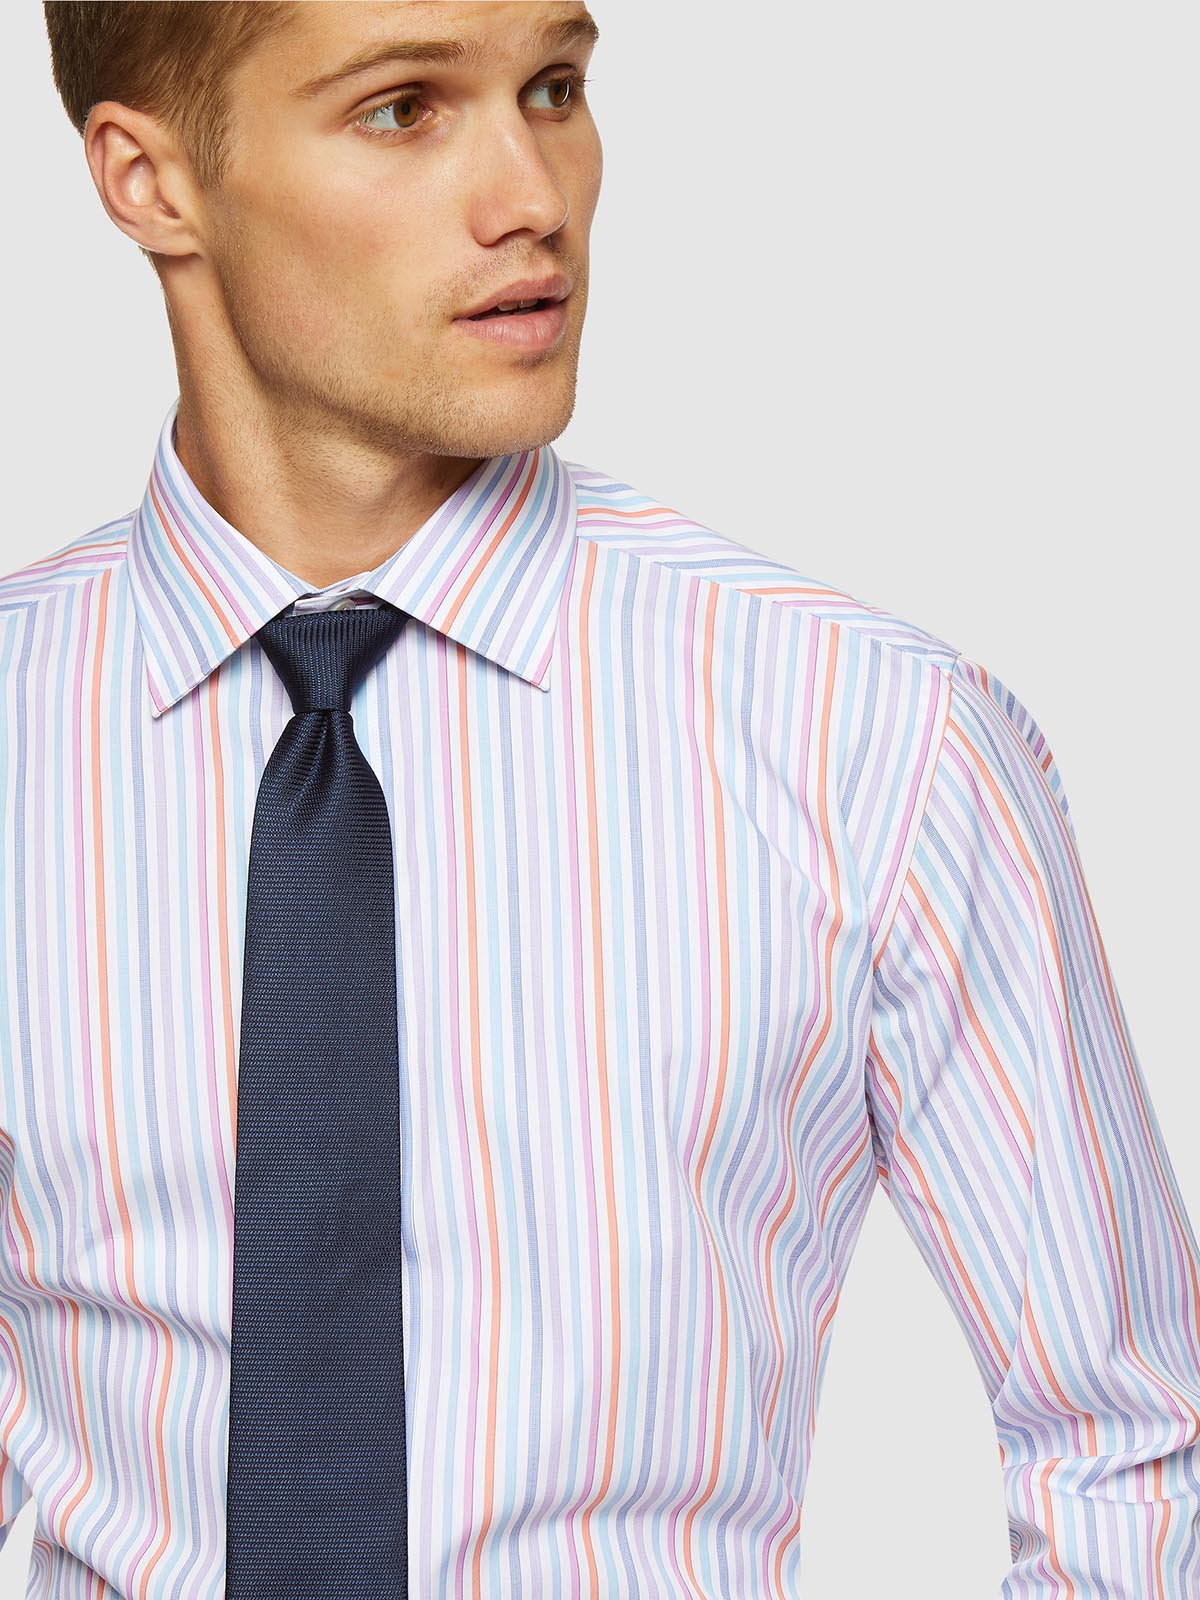 BECKTON MULTI STRIPE LUXURY SHIRT MULTI